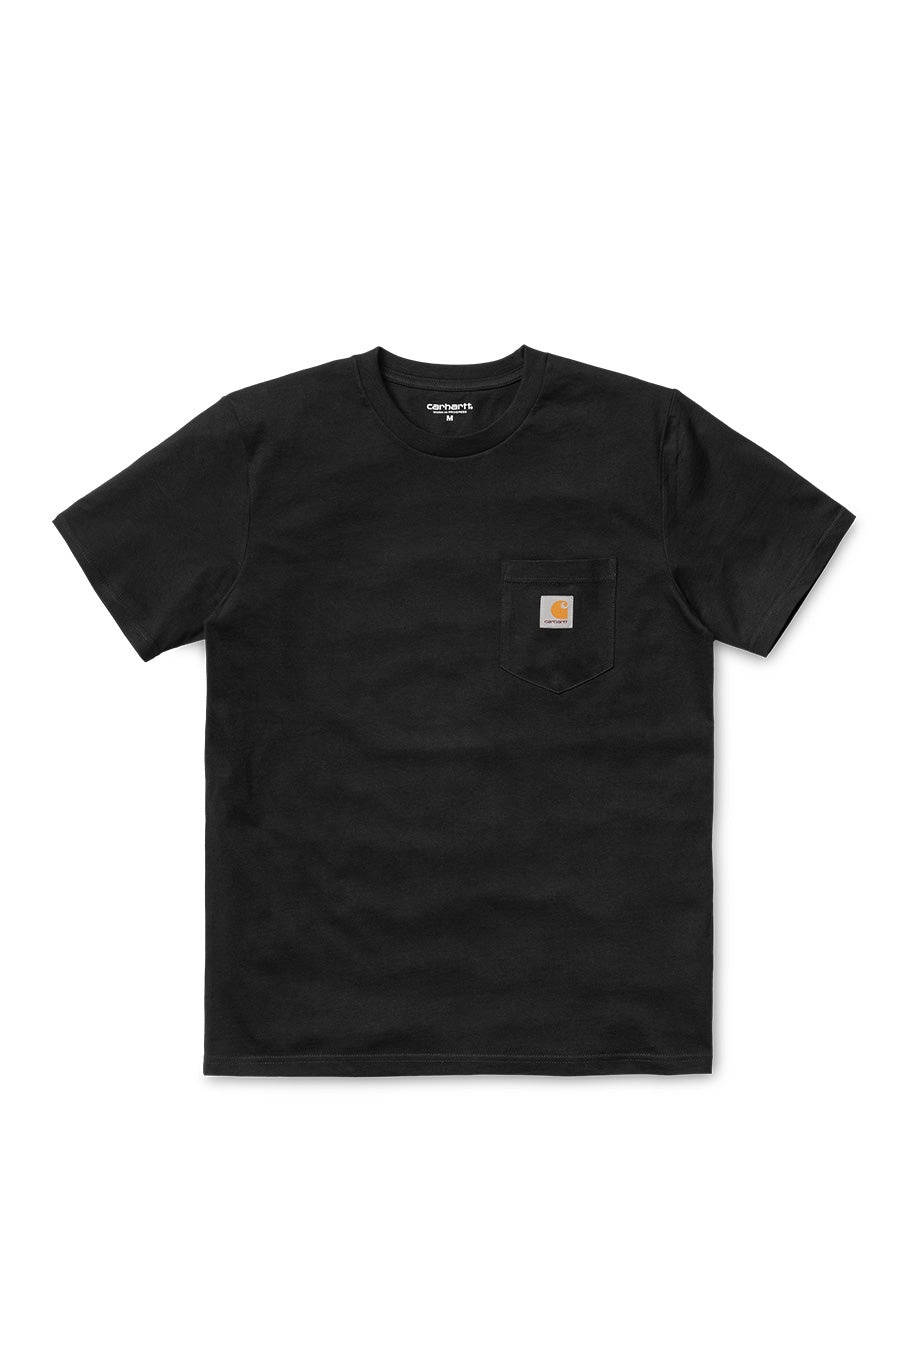 Carhartt WIP - Black Pocket T-Shirt